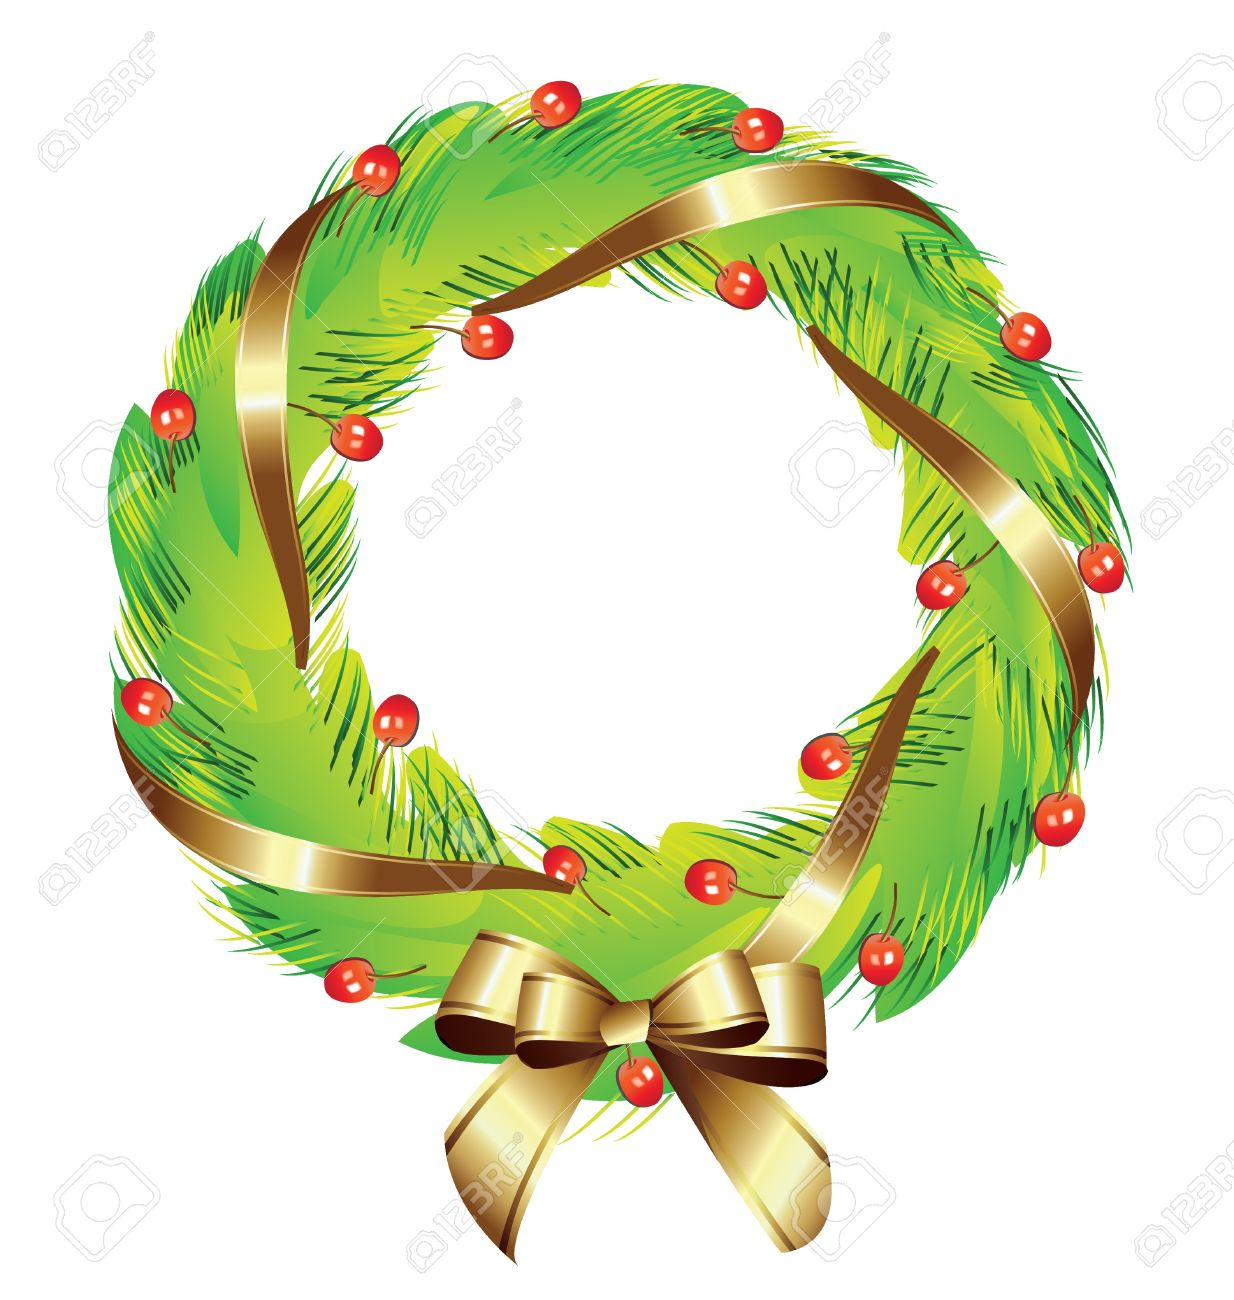 Christmas Wreath Clipart.Christmas Wreath With Gold Ribbon